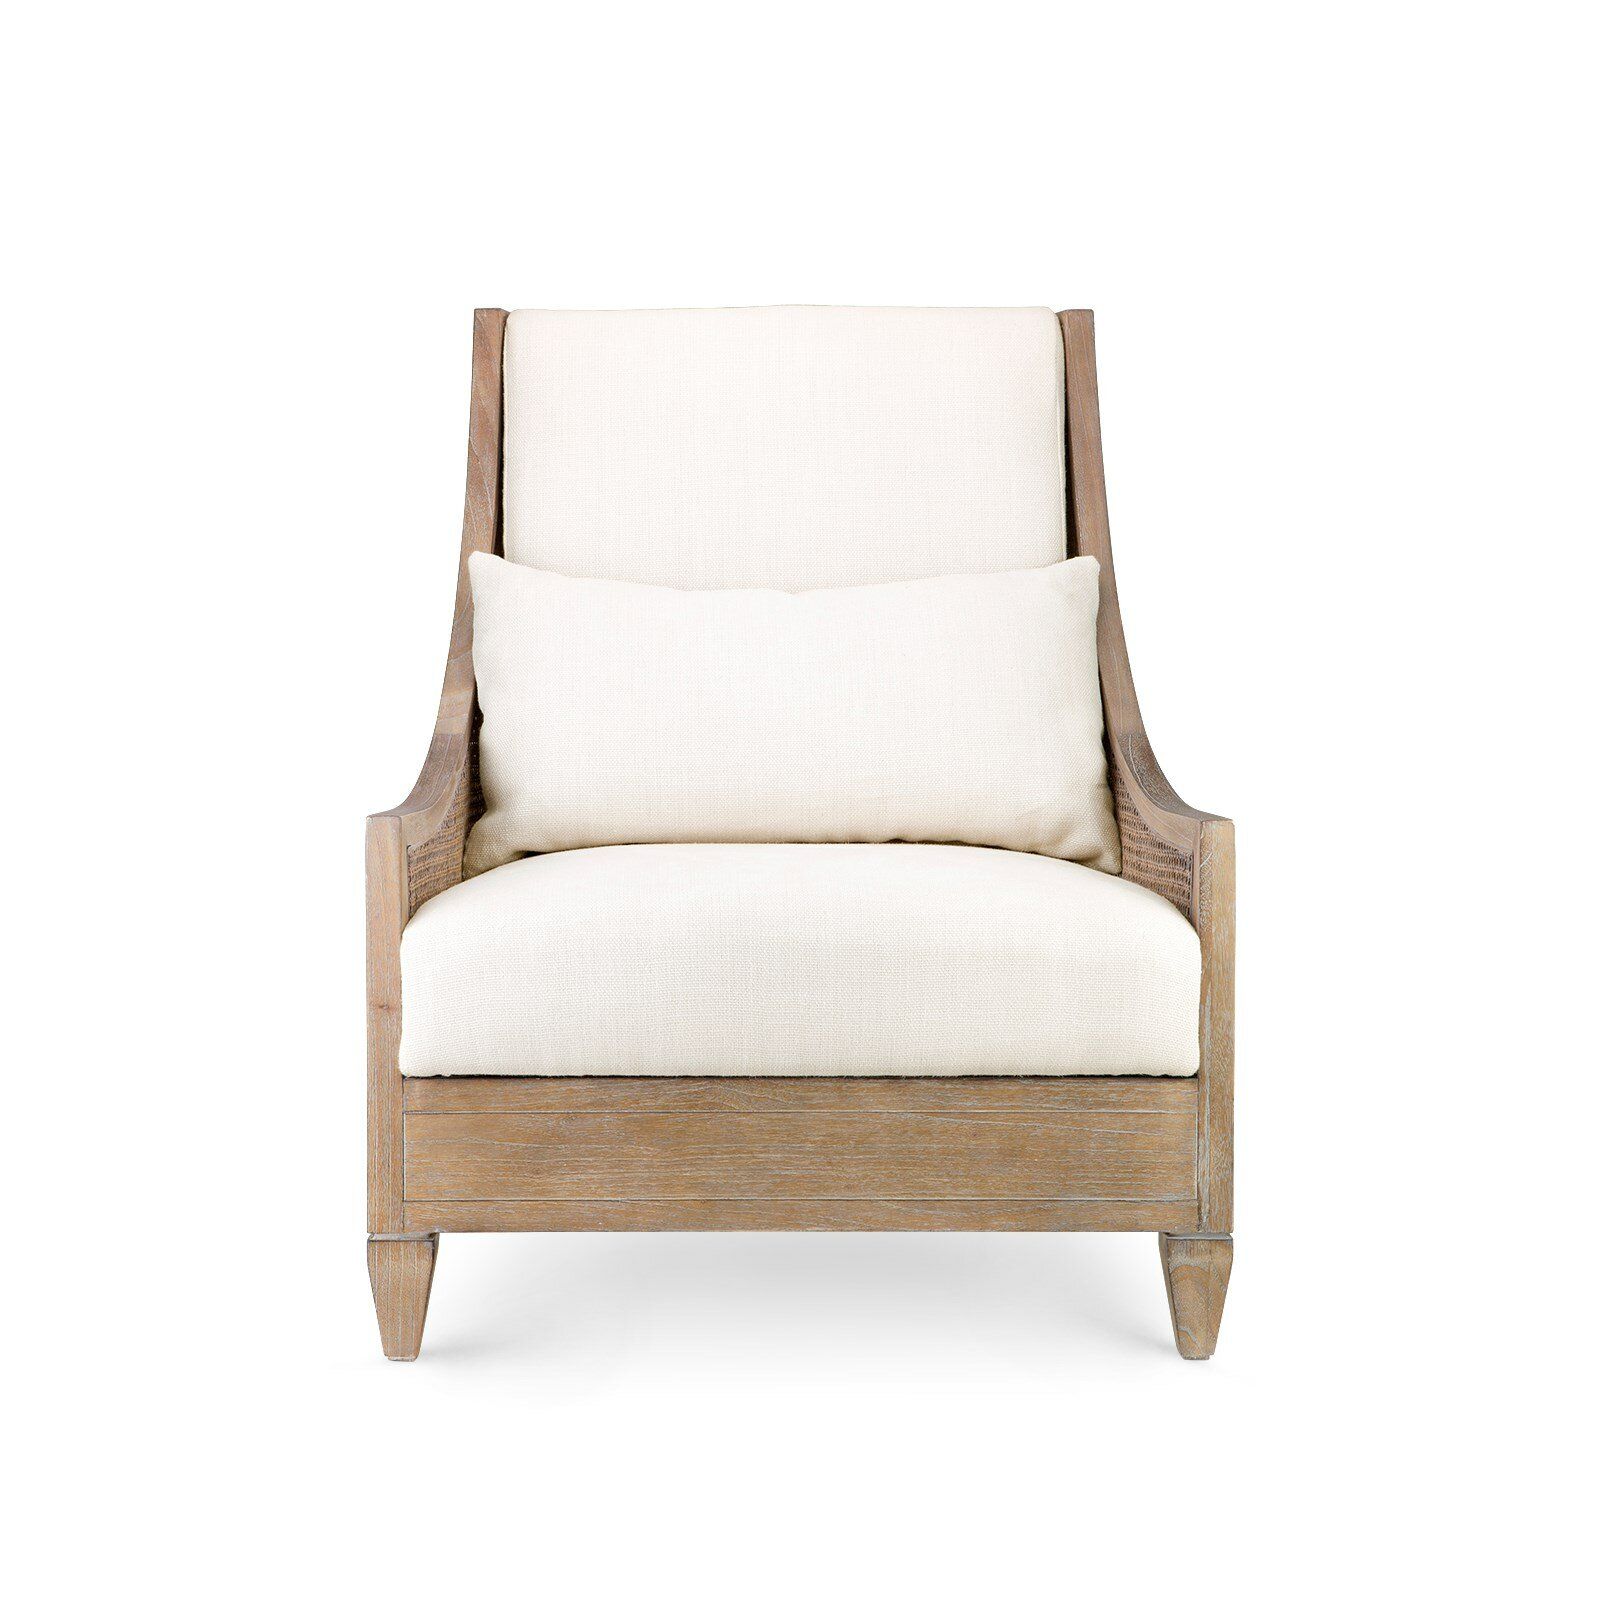 Raleigh Armchair Throughout Haleigh Armchairs (View 5 of 15)